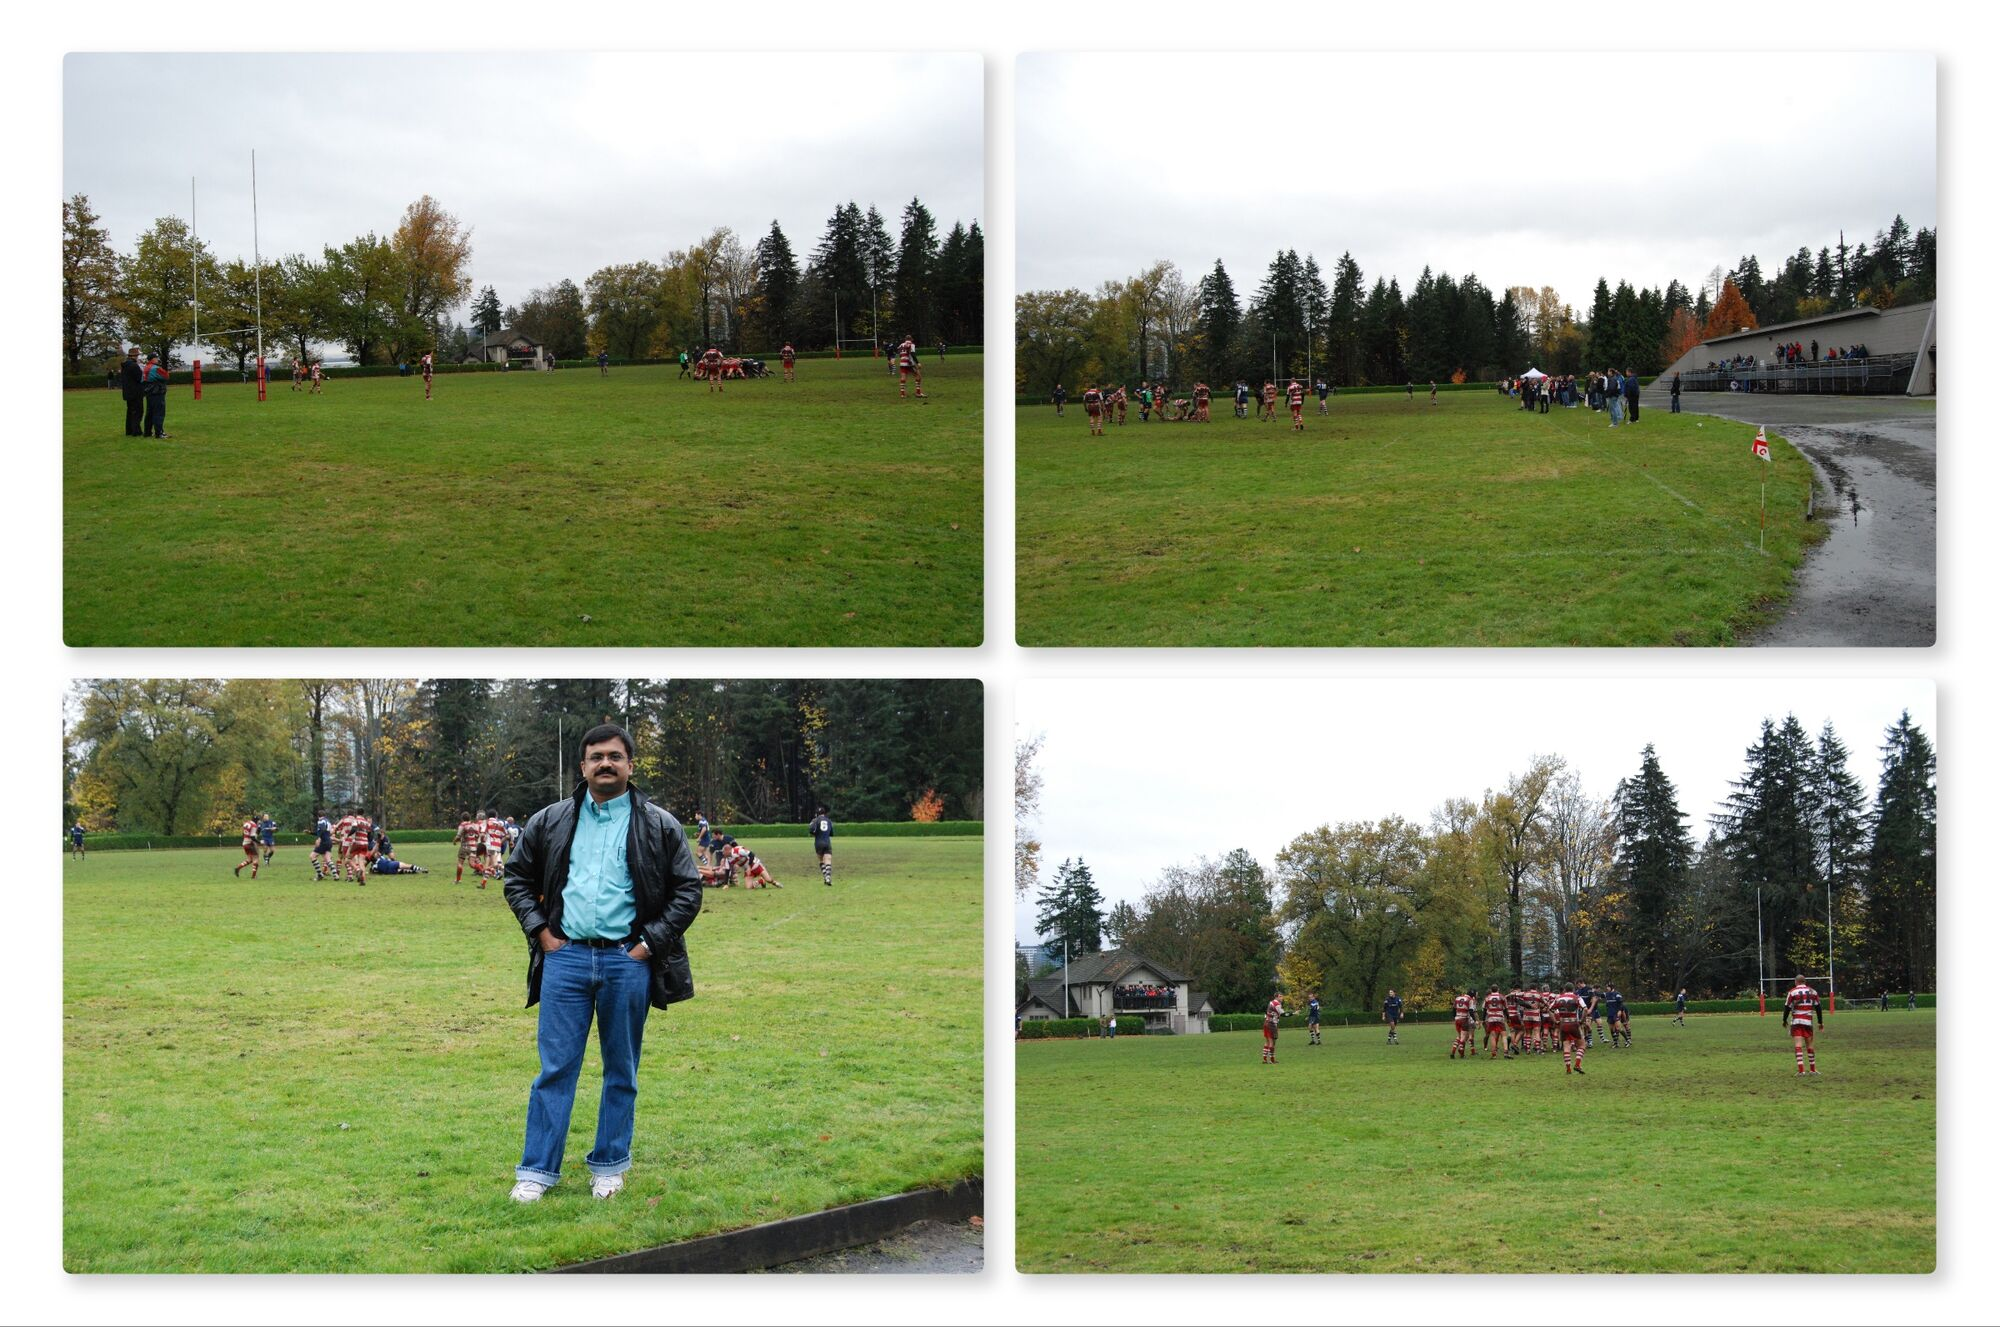 Rugby match at Stanley Park